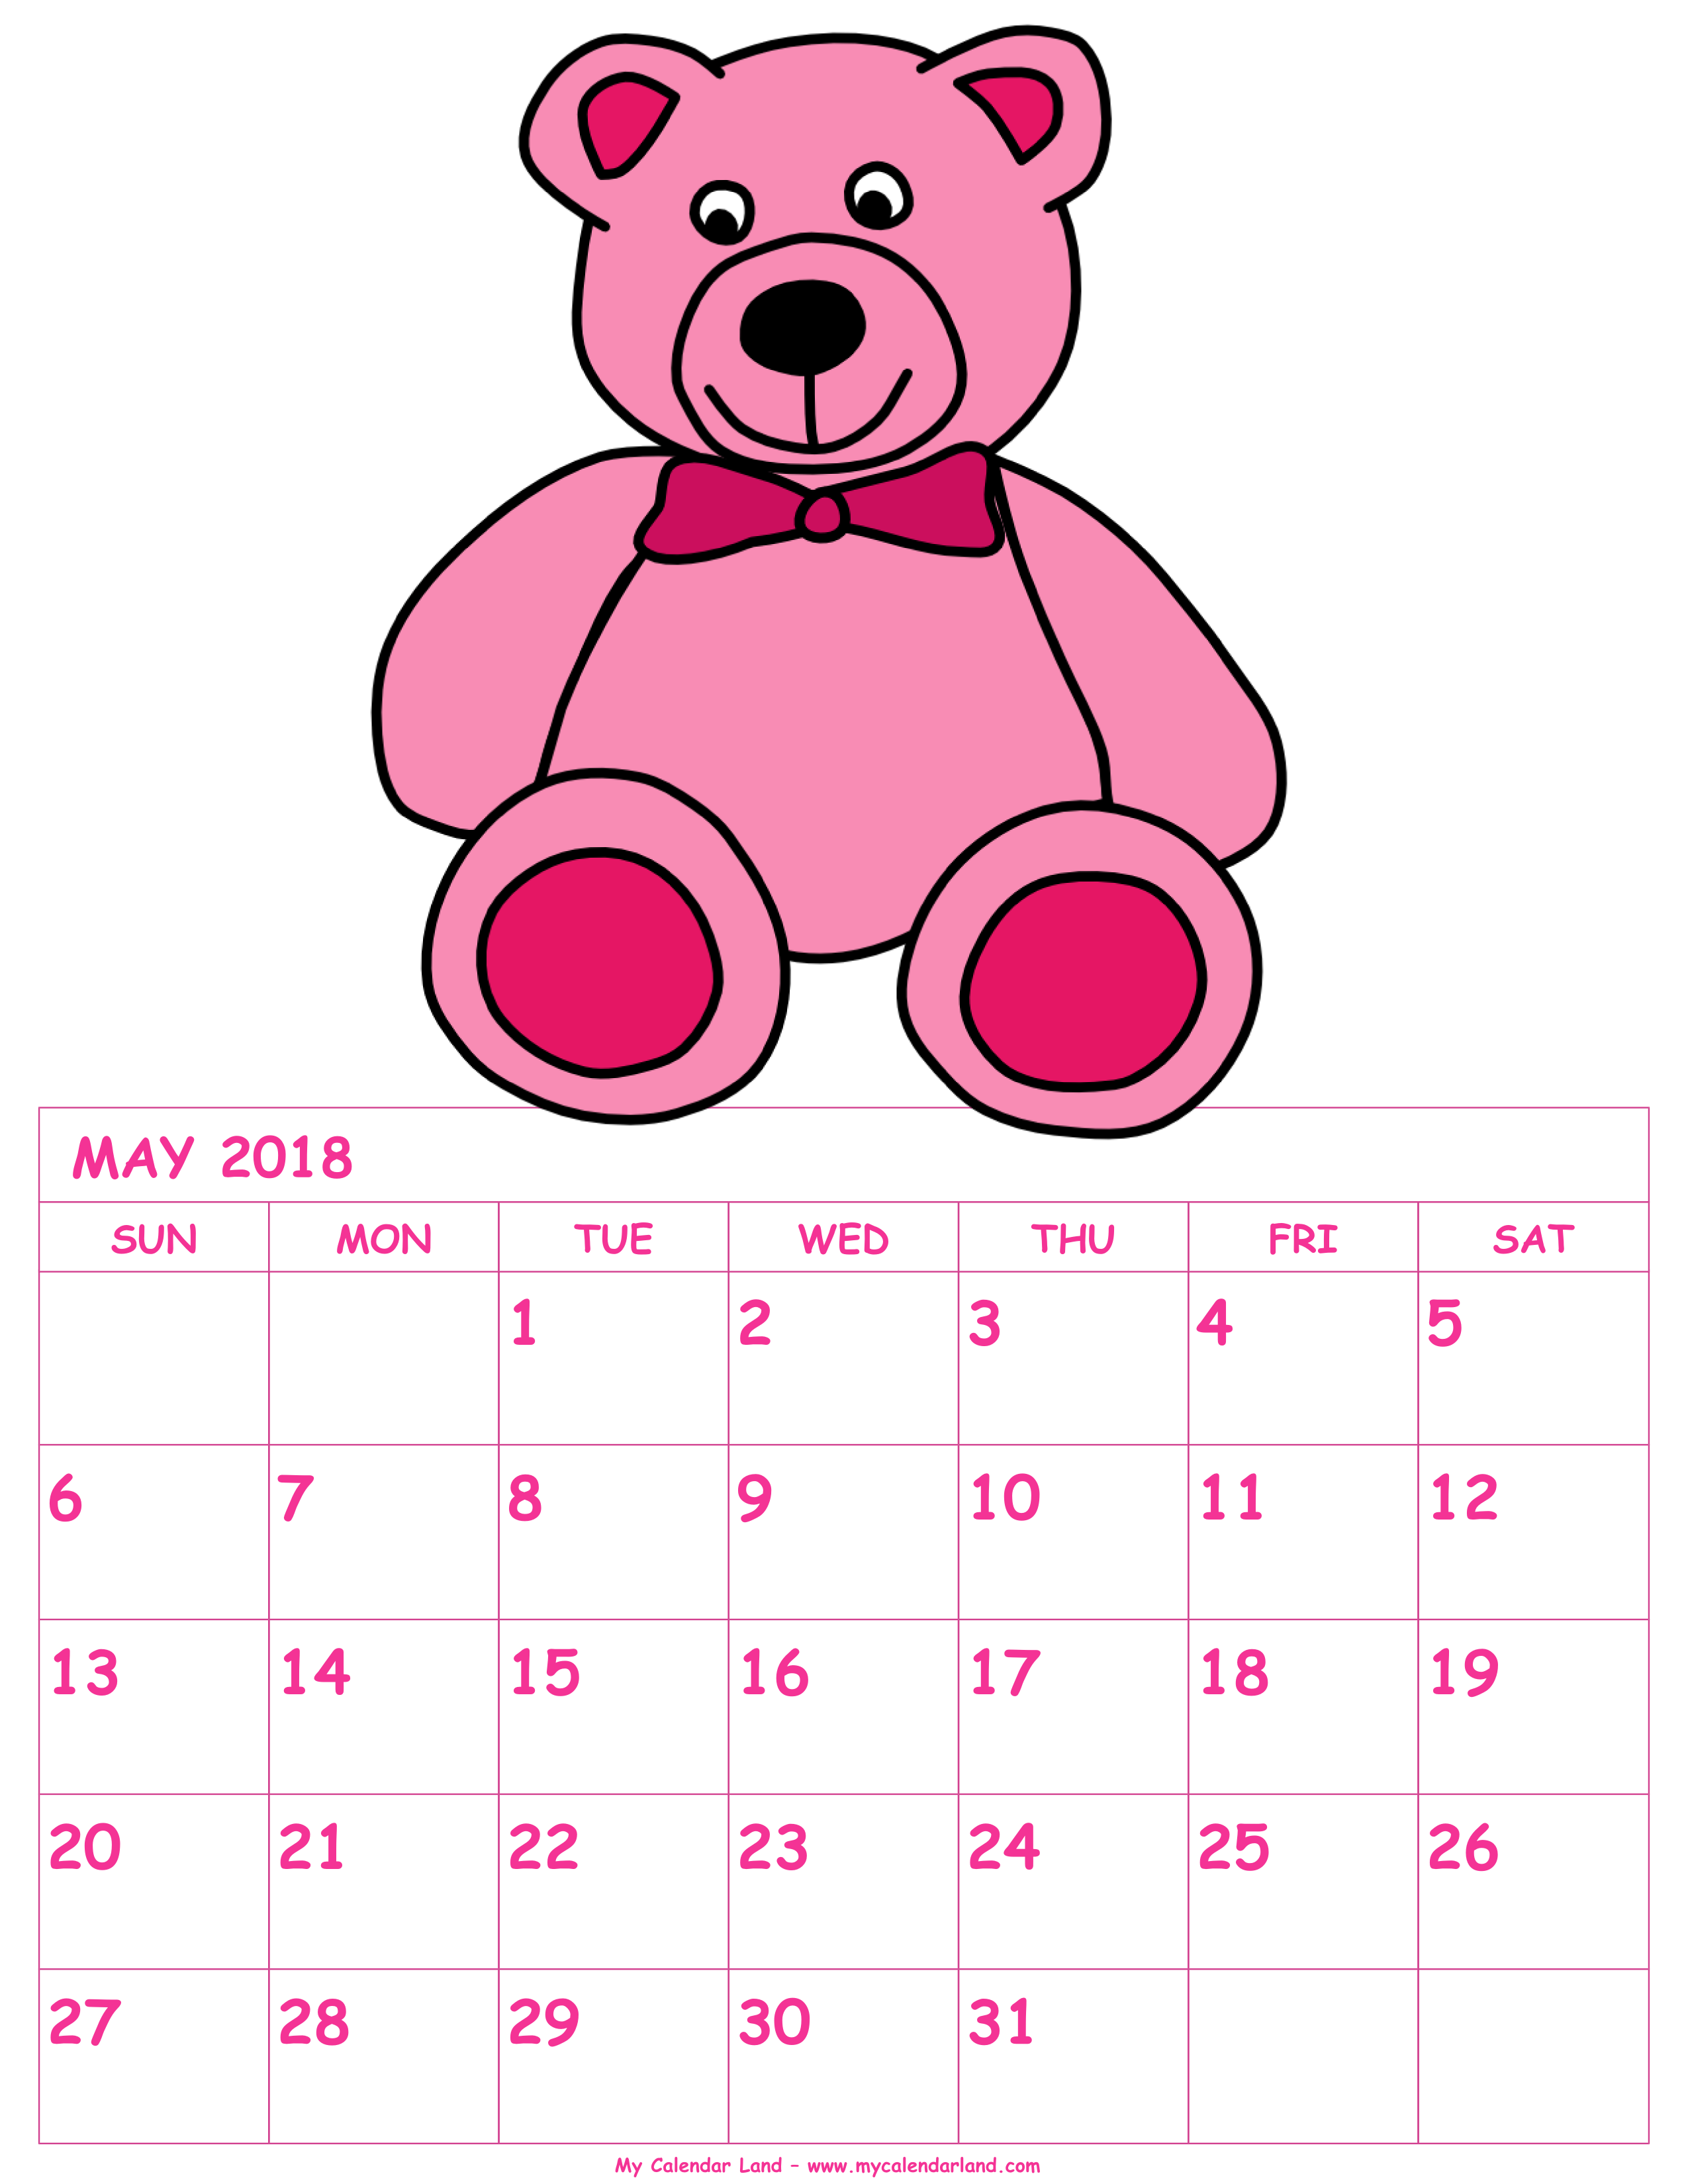 Monthly calendar clipart may clipart transparent library May 2018 Calendar - My Calendar Land clipart transparent library